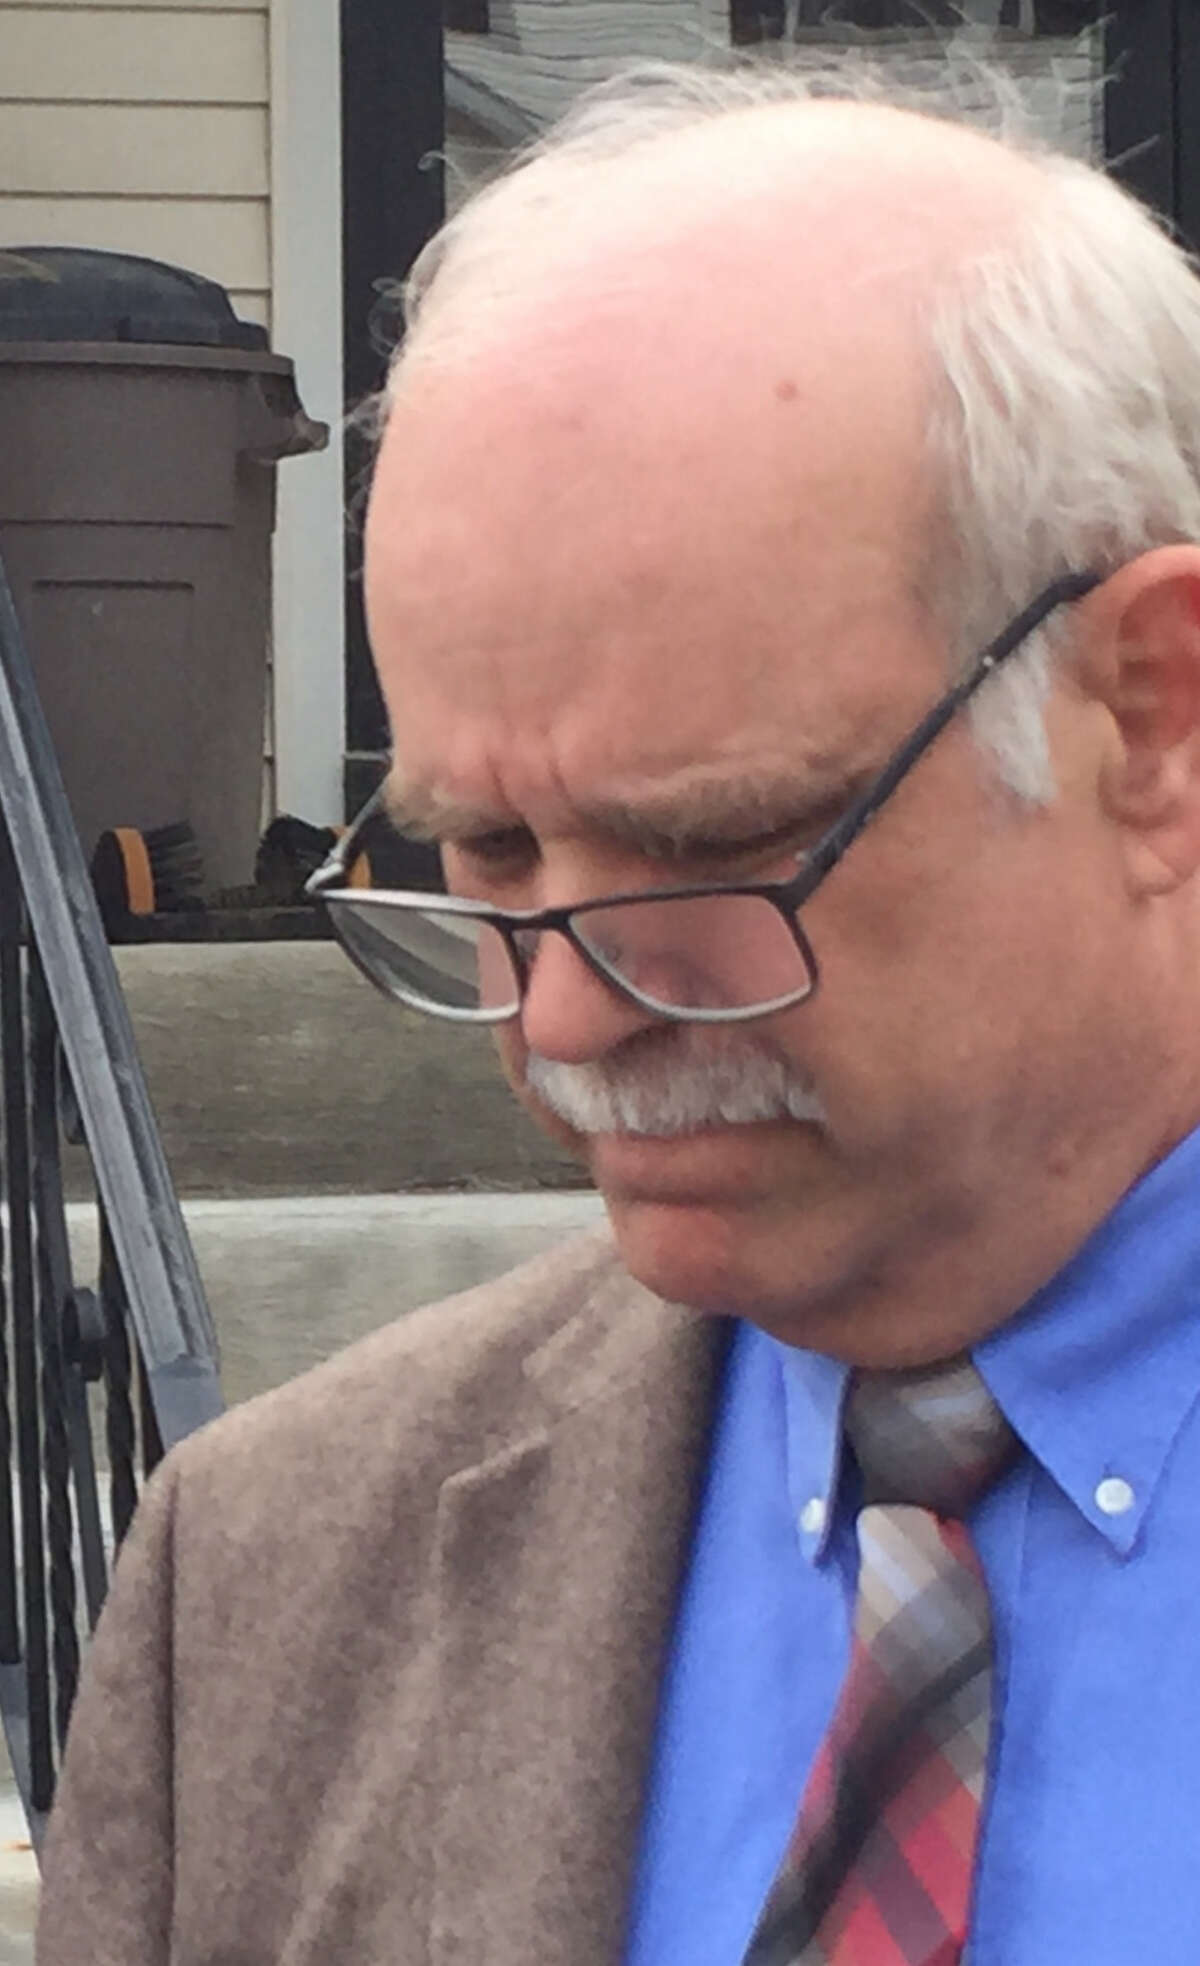 Former state Office of Mental Health official John Allen outside Coeymans Town Court on Thursday, April 18, 2019.